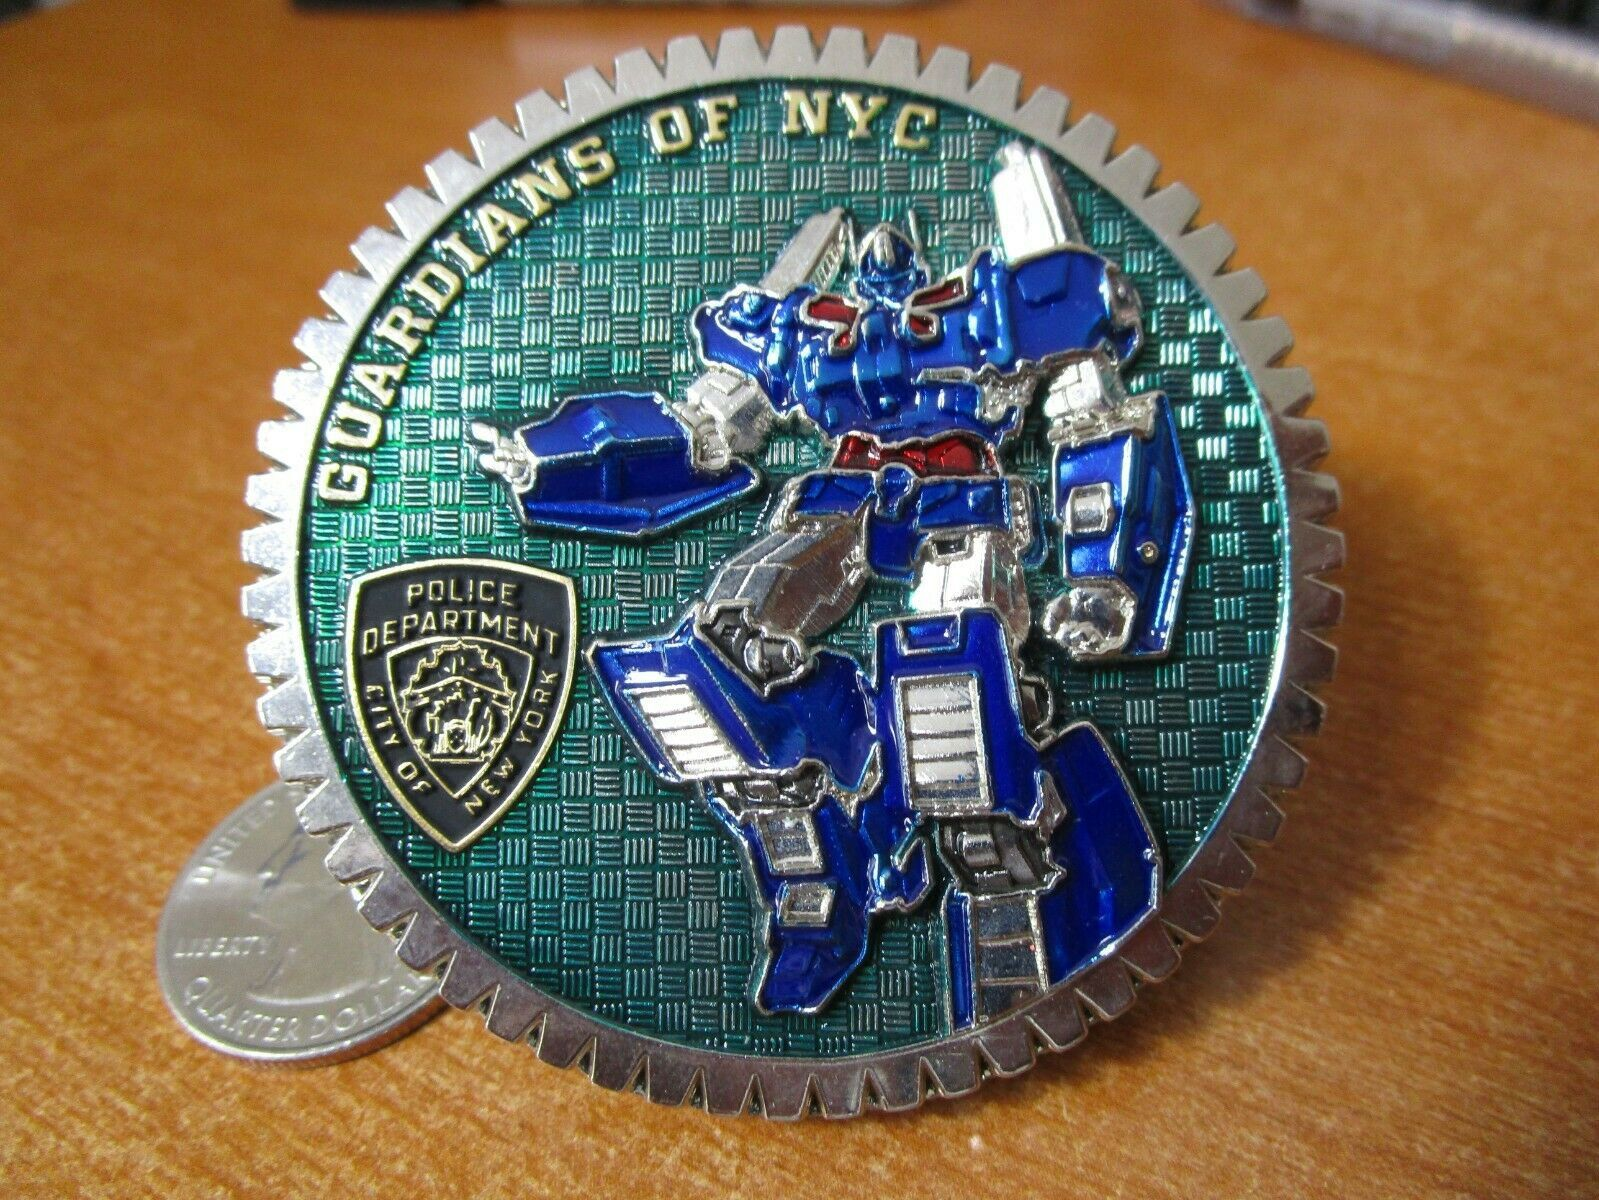 Nypd Guardians Of New York City Police Transformers Challenge Etsy In 2020 Nypd Challenge Coins New York City